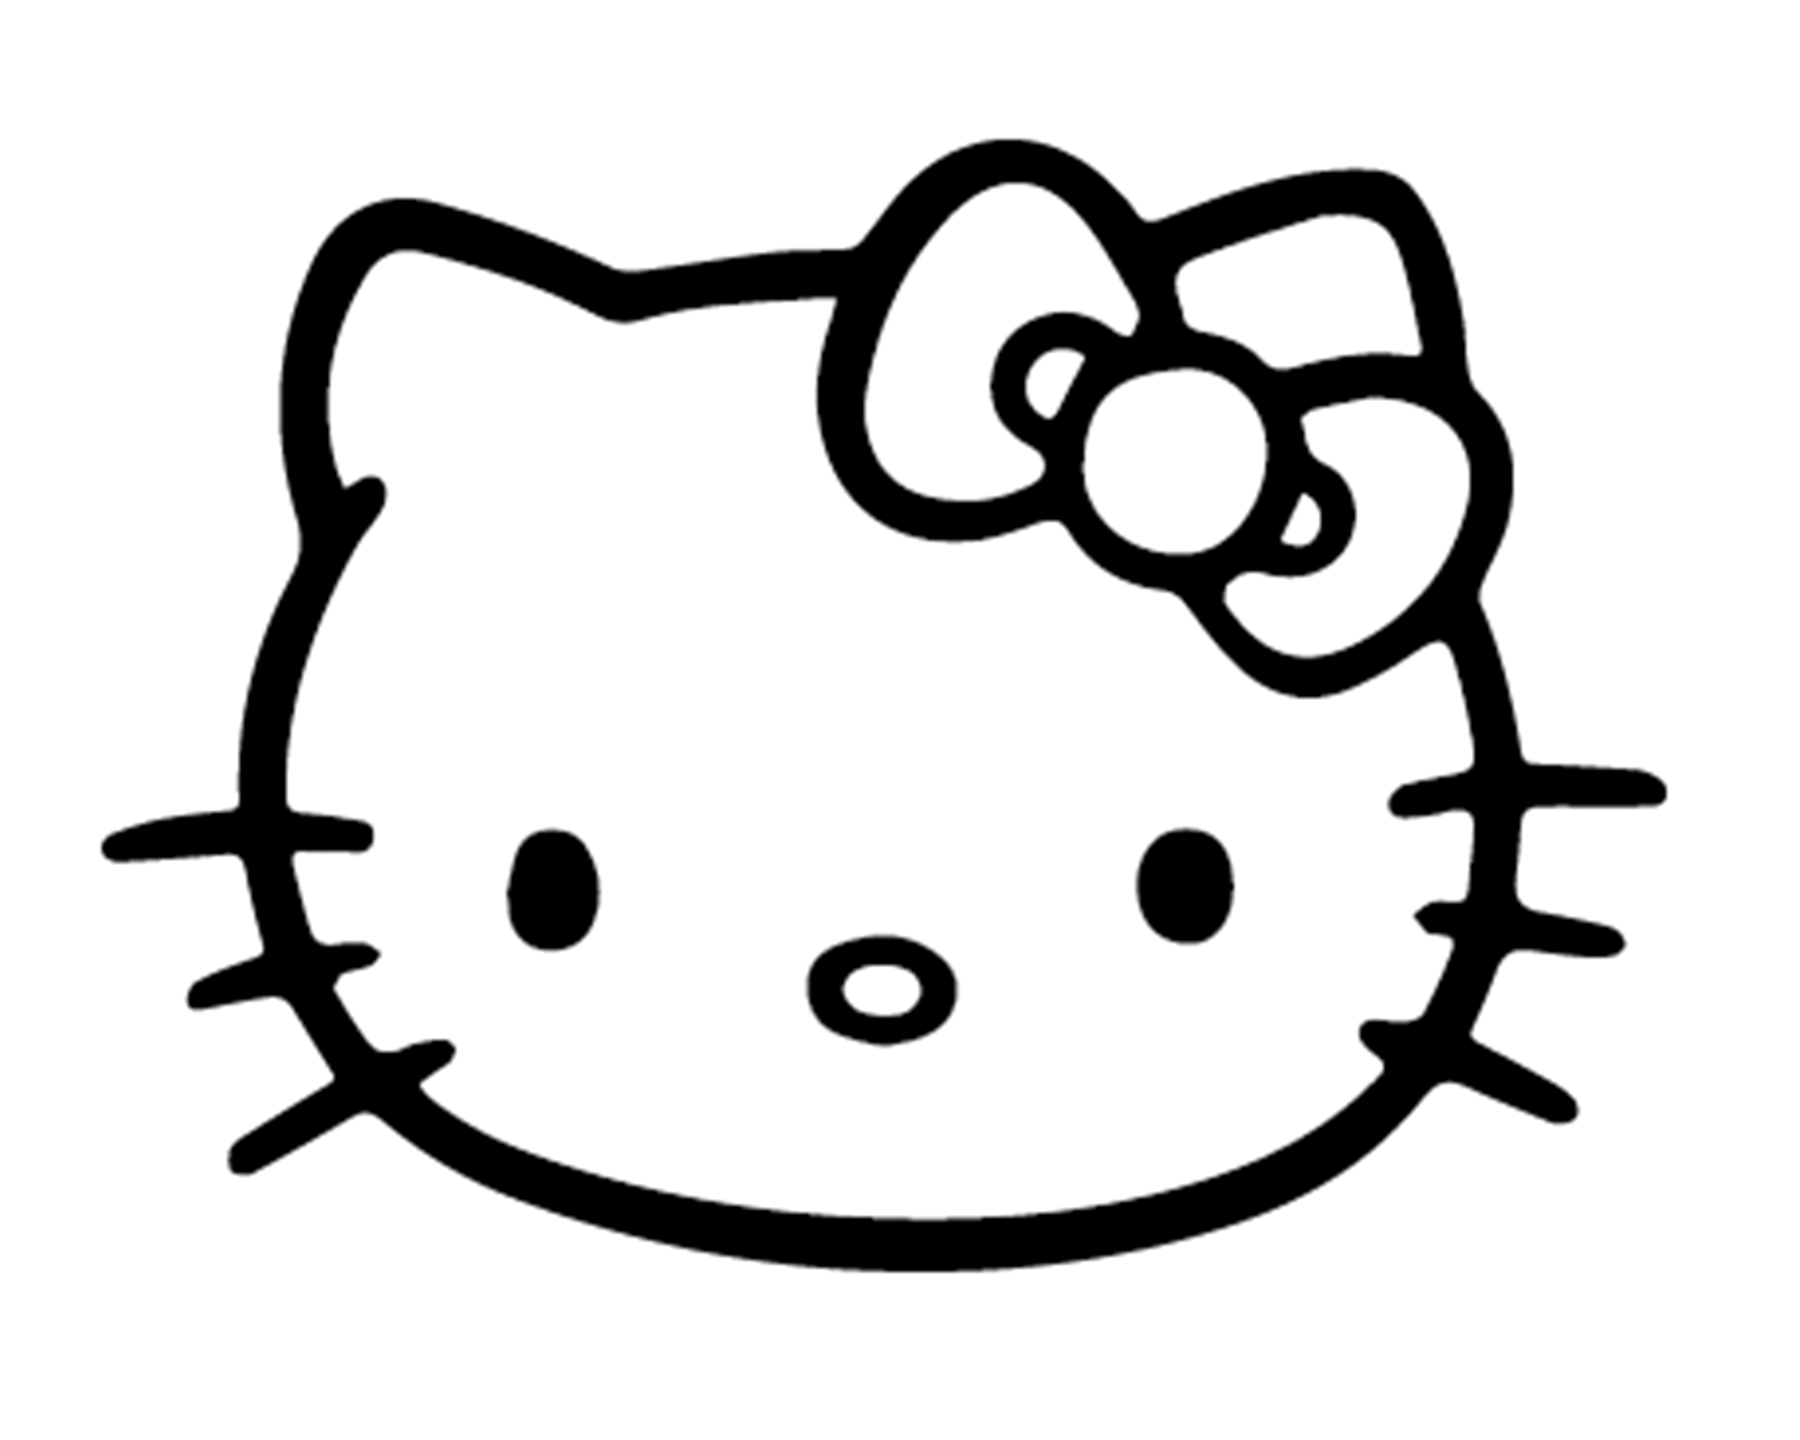 HELLO KITTY LOGO DECAL VINYL PAINTING STENCIL PACK *HIGH QUALITY*.